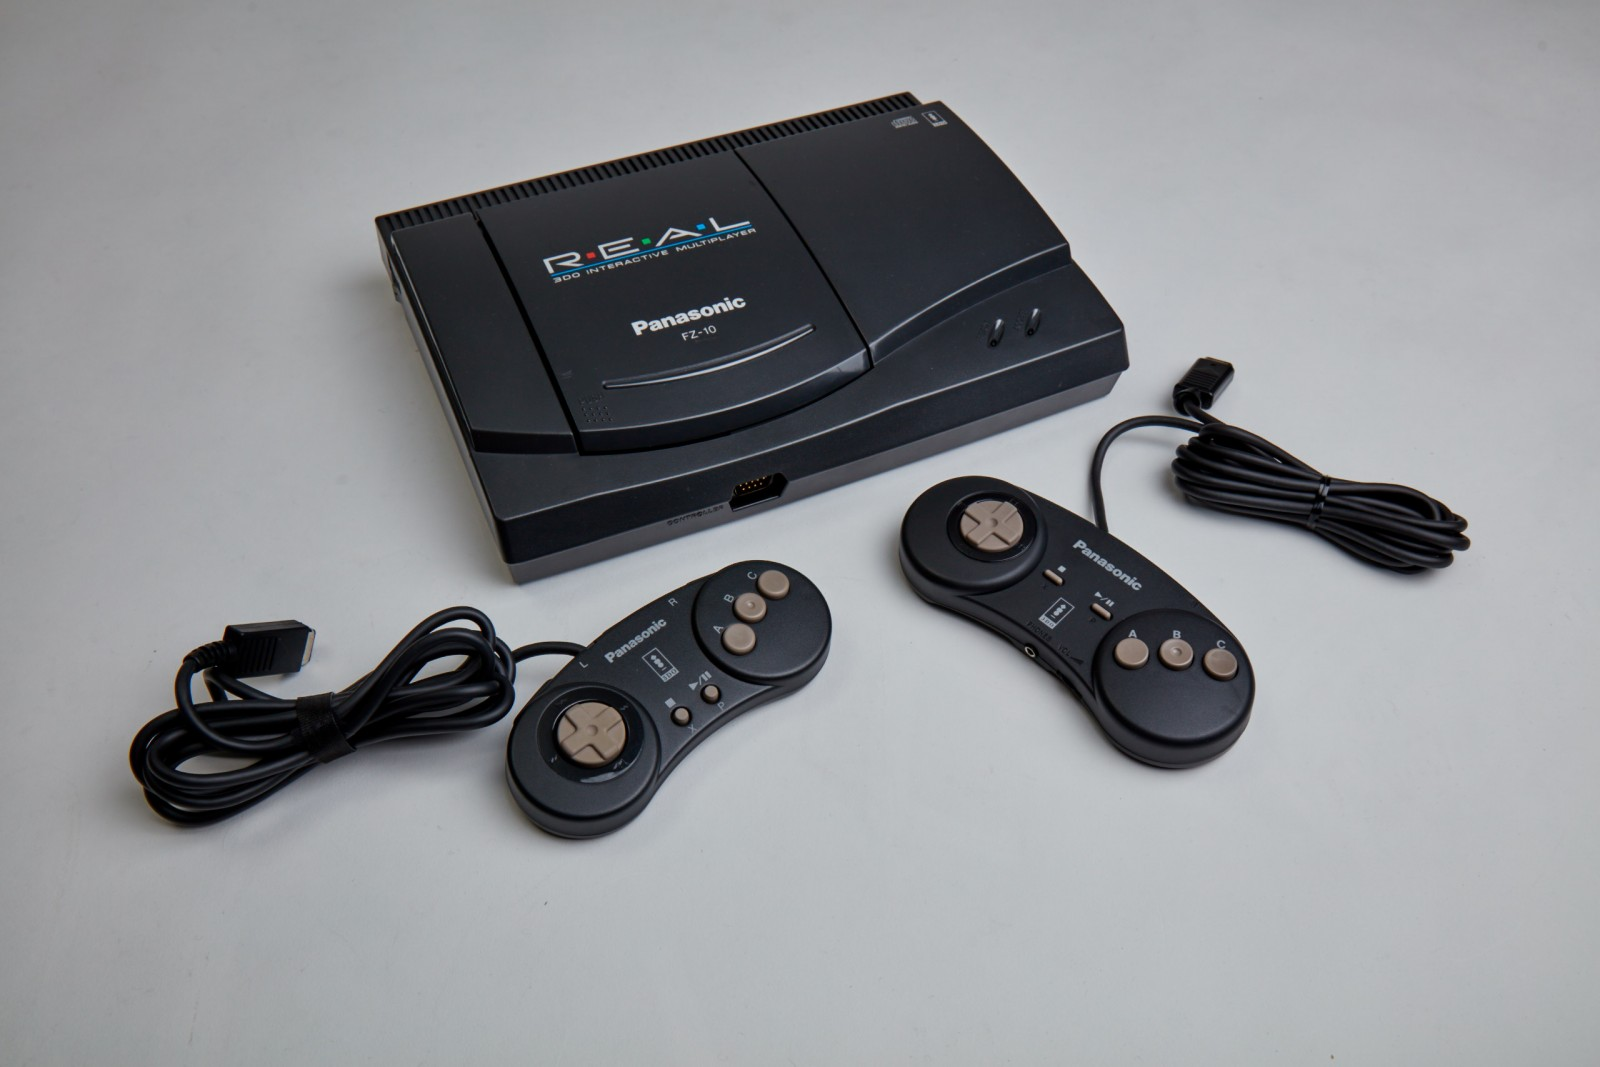 Panasonic 3DO 3